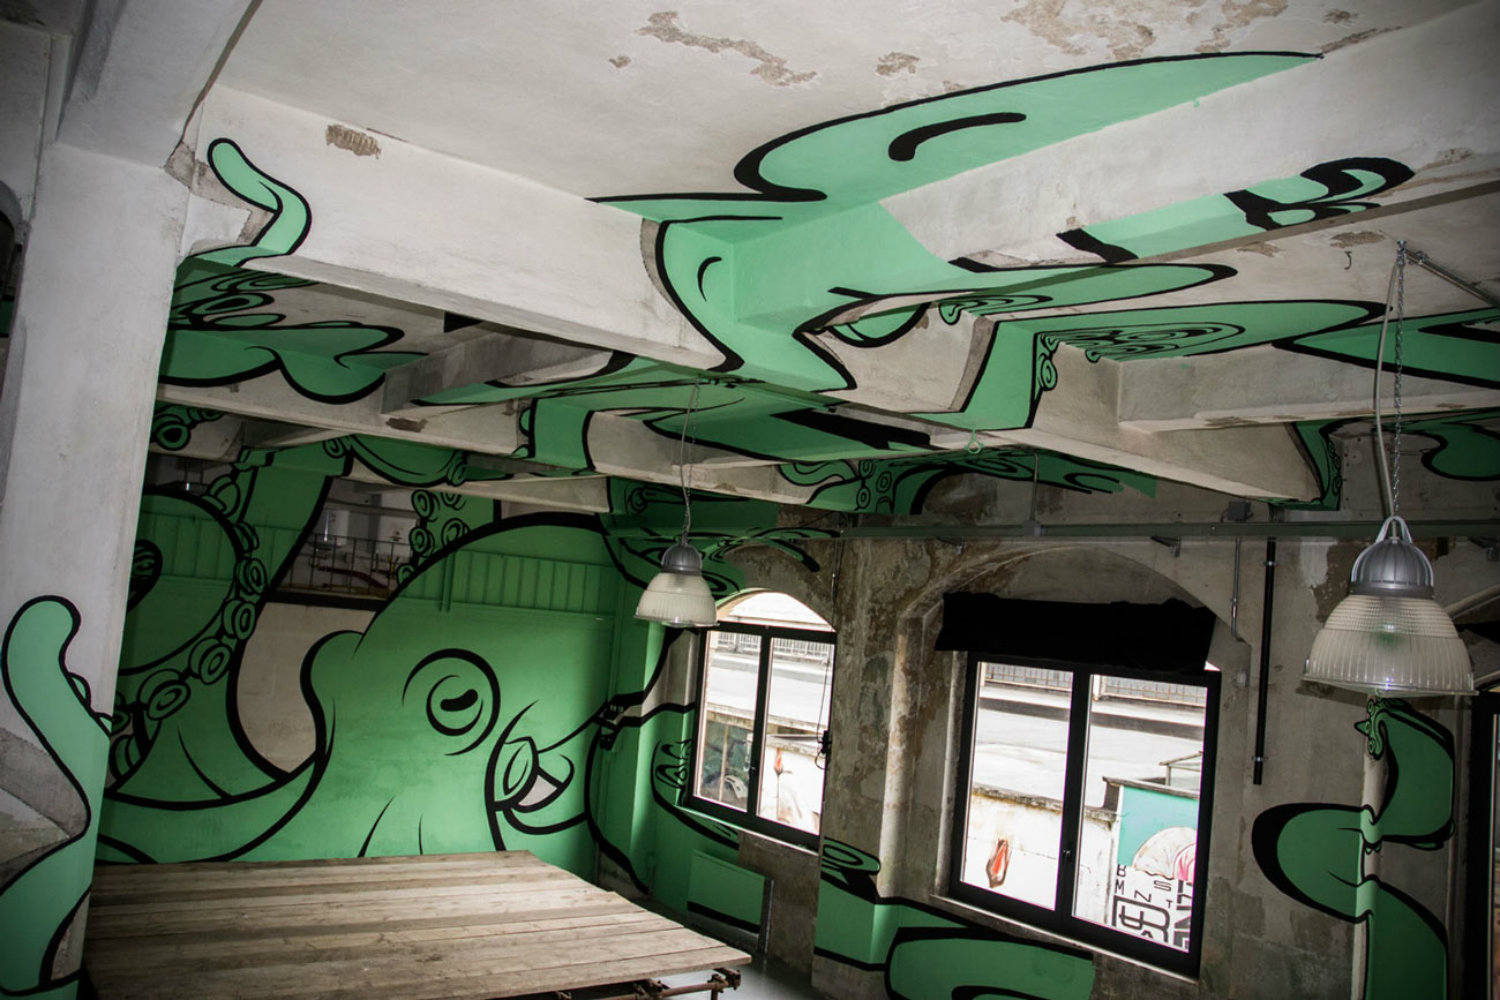 truly design anamorphic graffiti octopus green concrete space